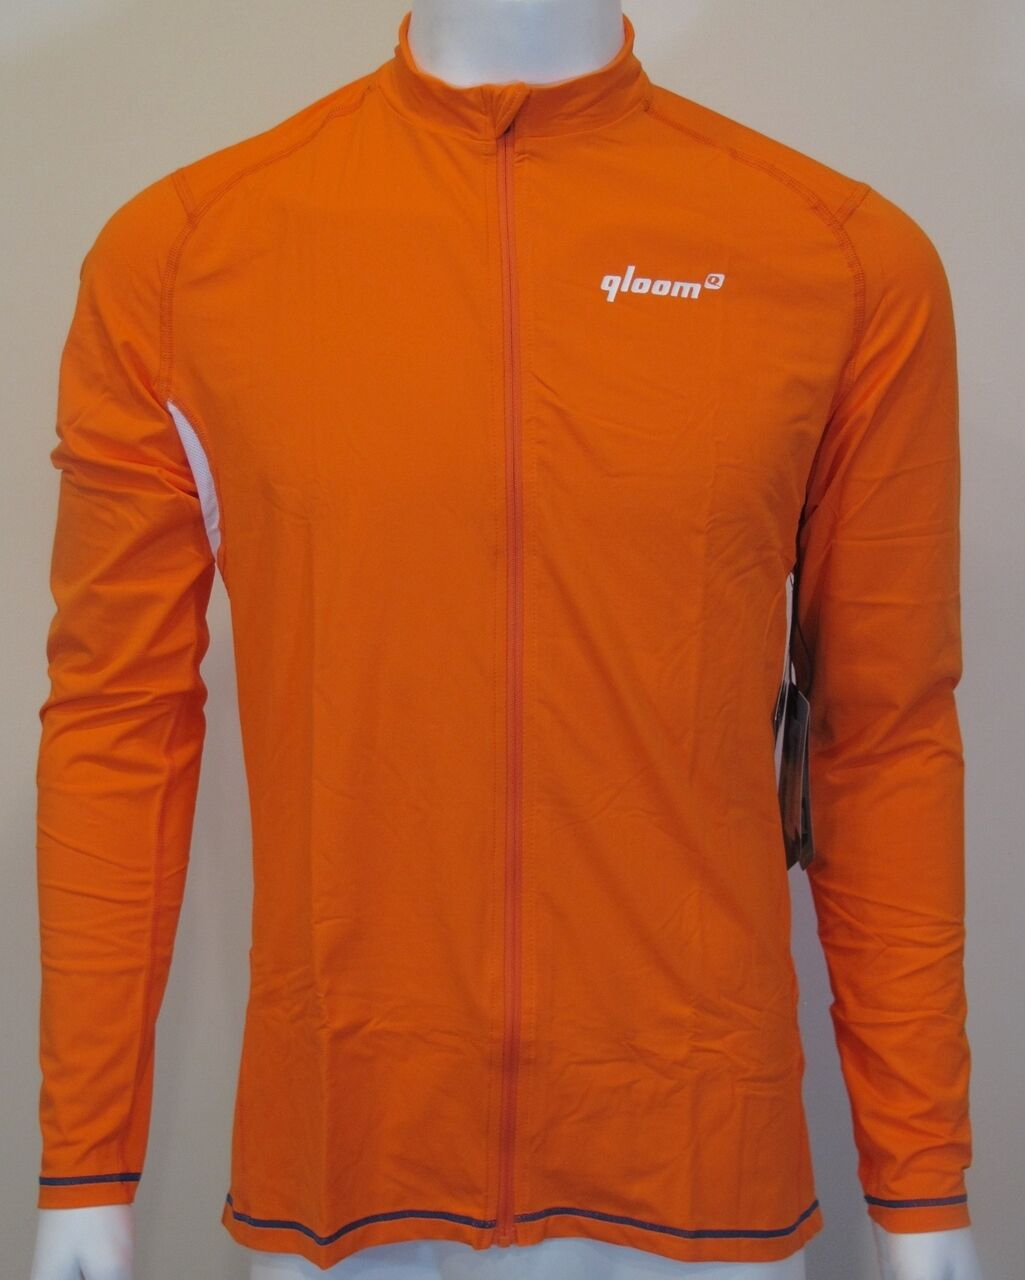 QLOOM BYRON Long Sleeves Training apparel M's orange Cycling Jersey